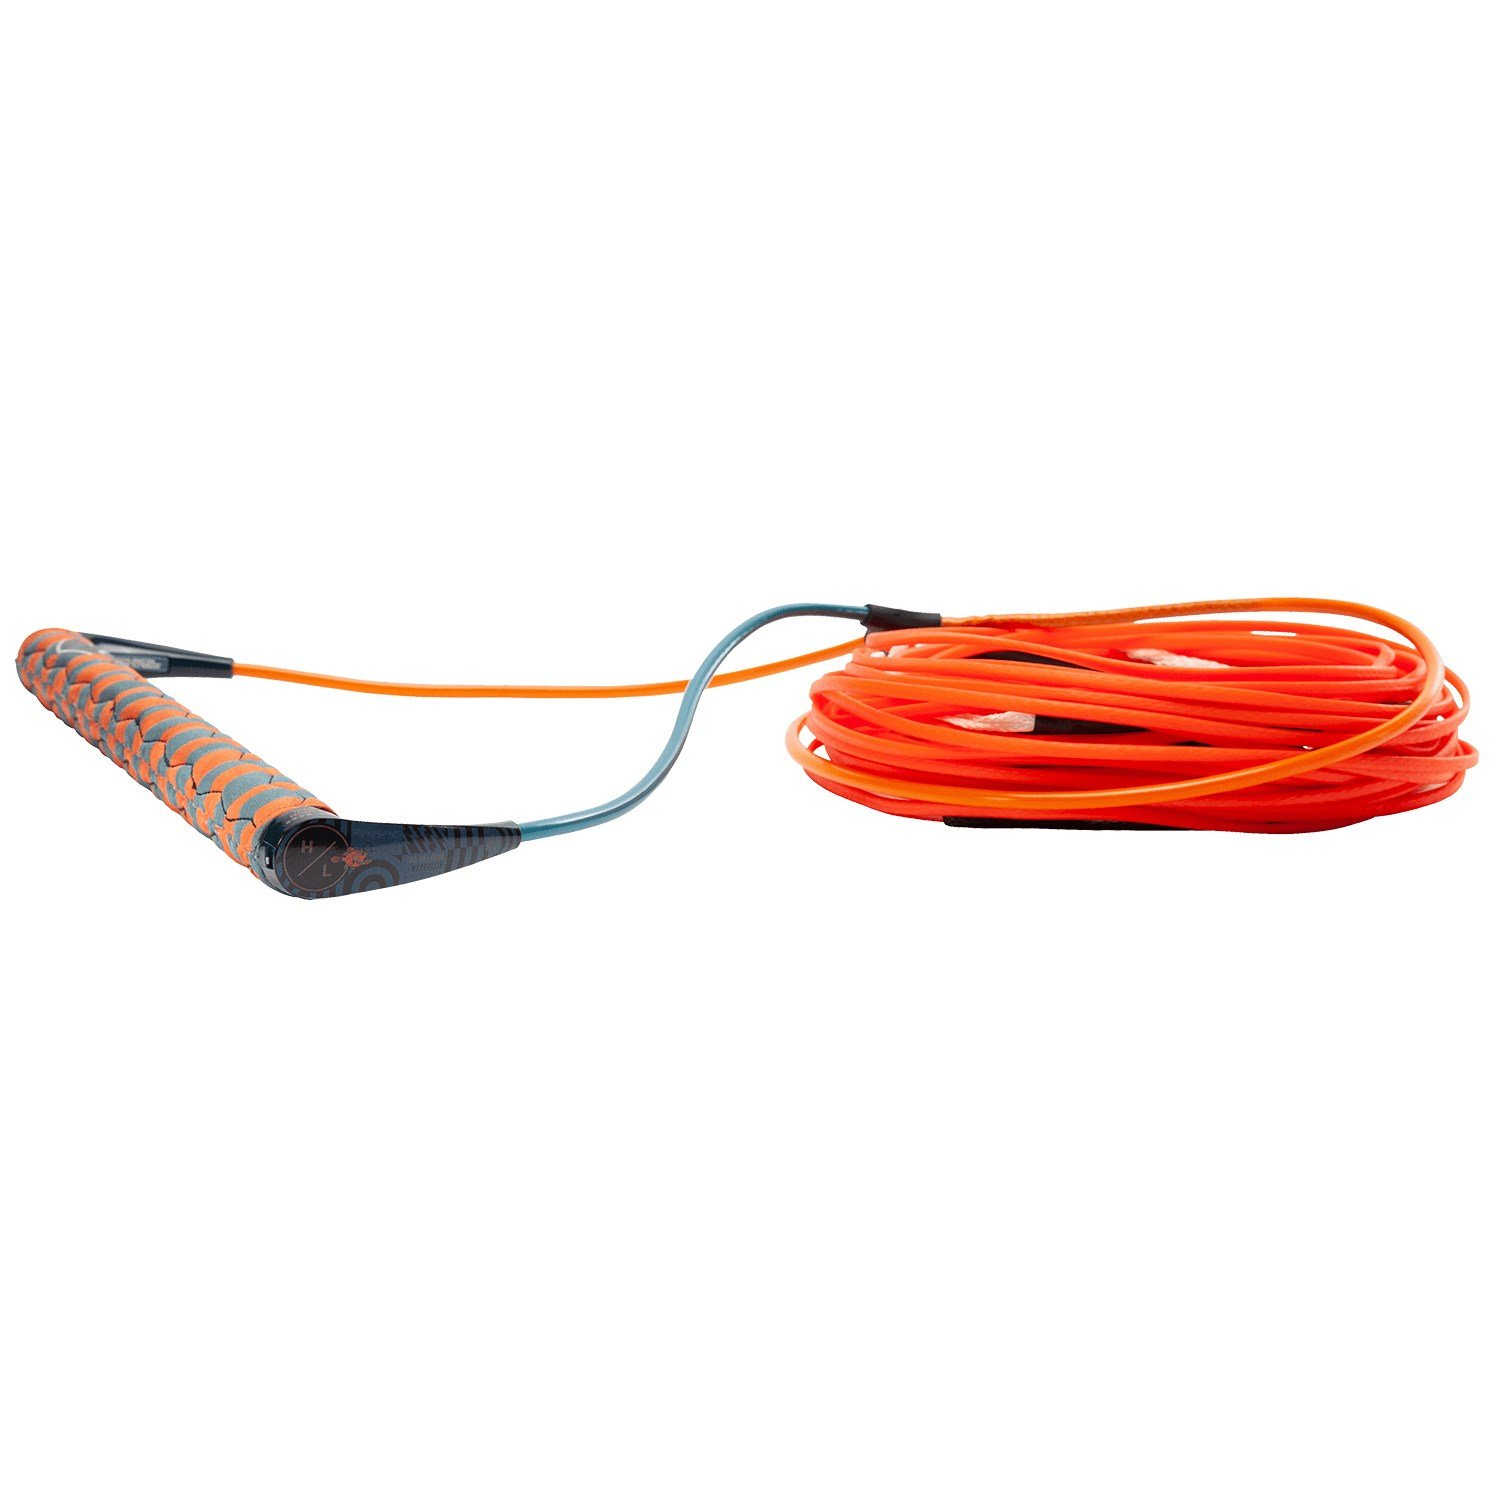 Hyperlite 80 Foot Silicone Flat Line Rope